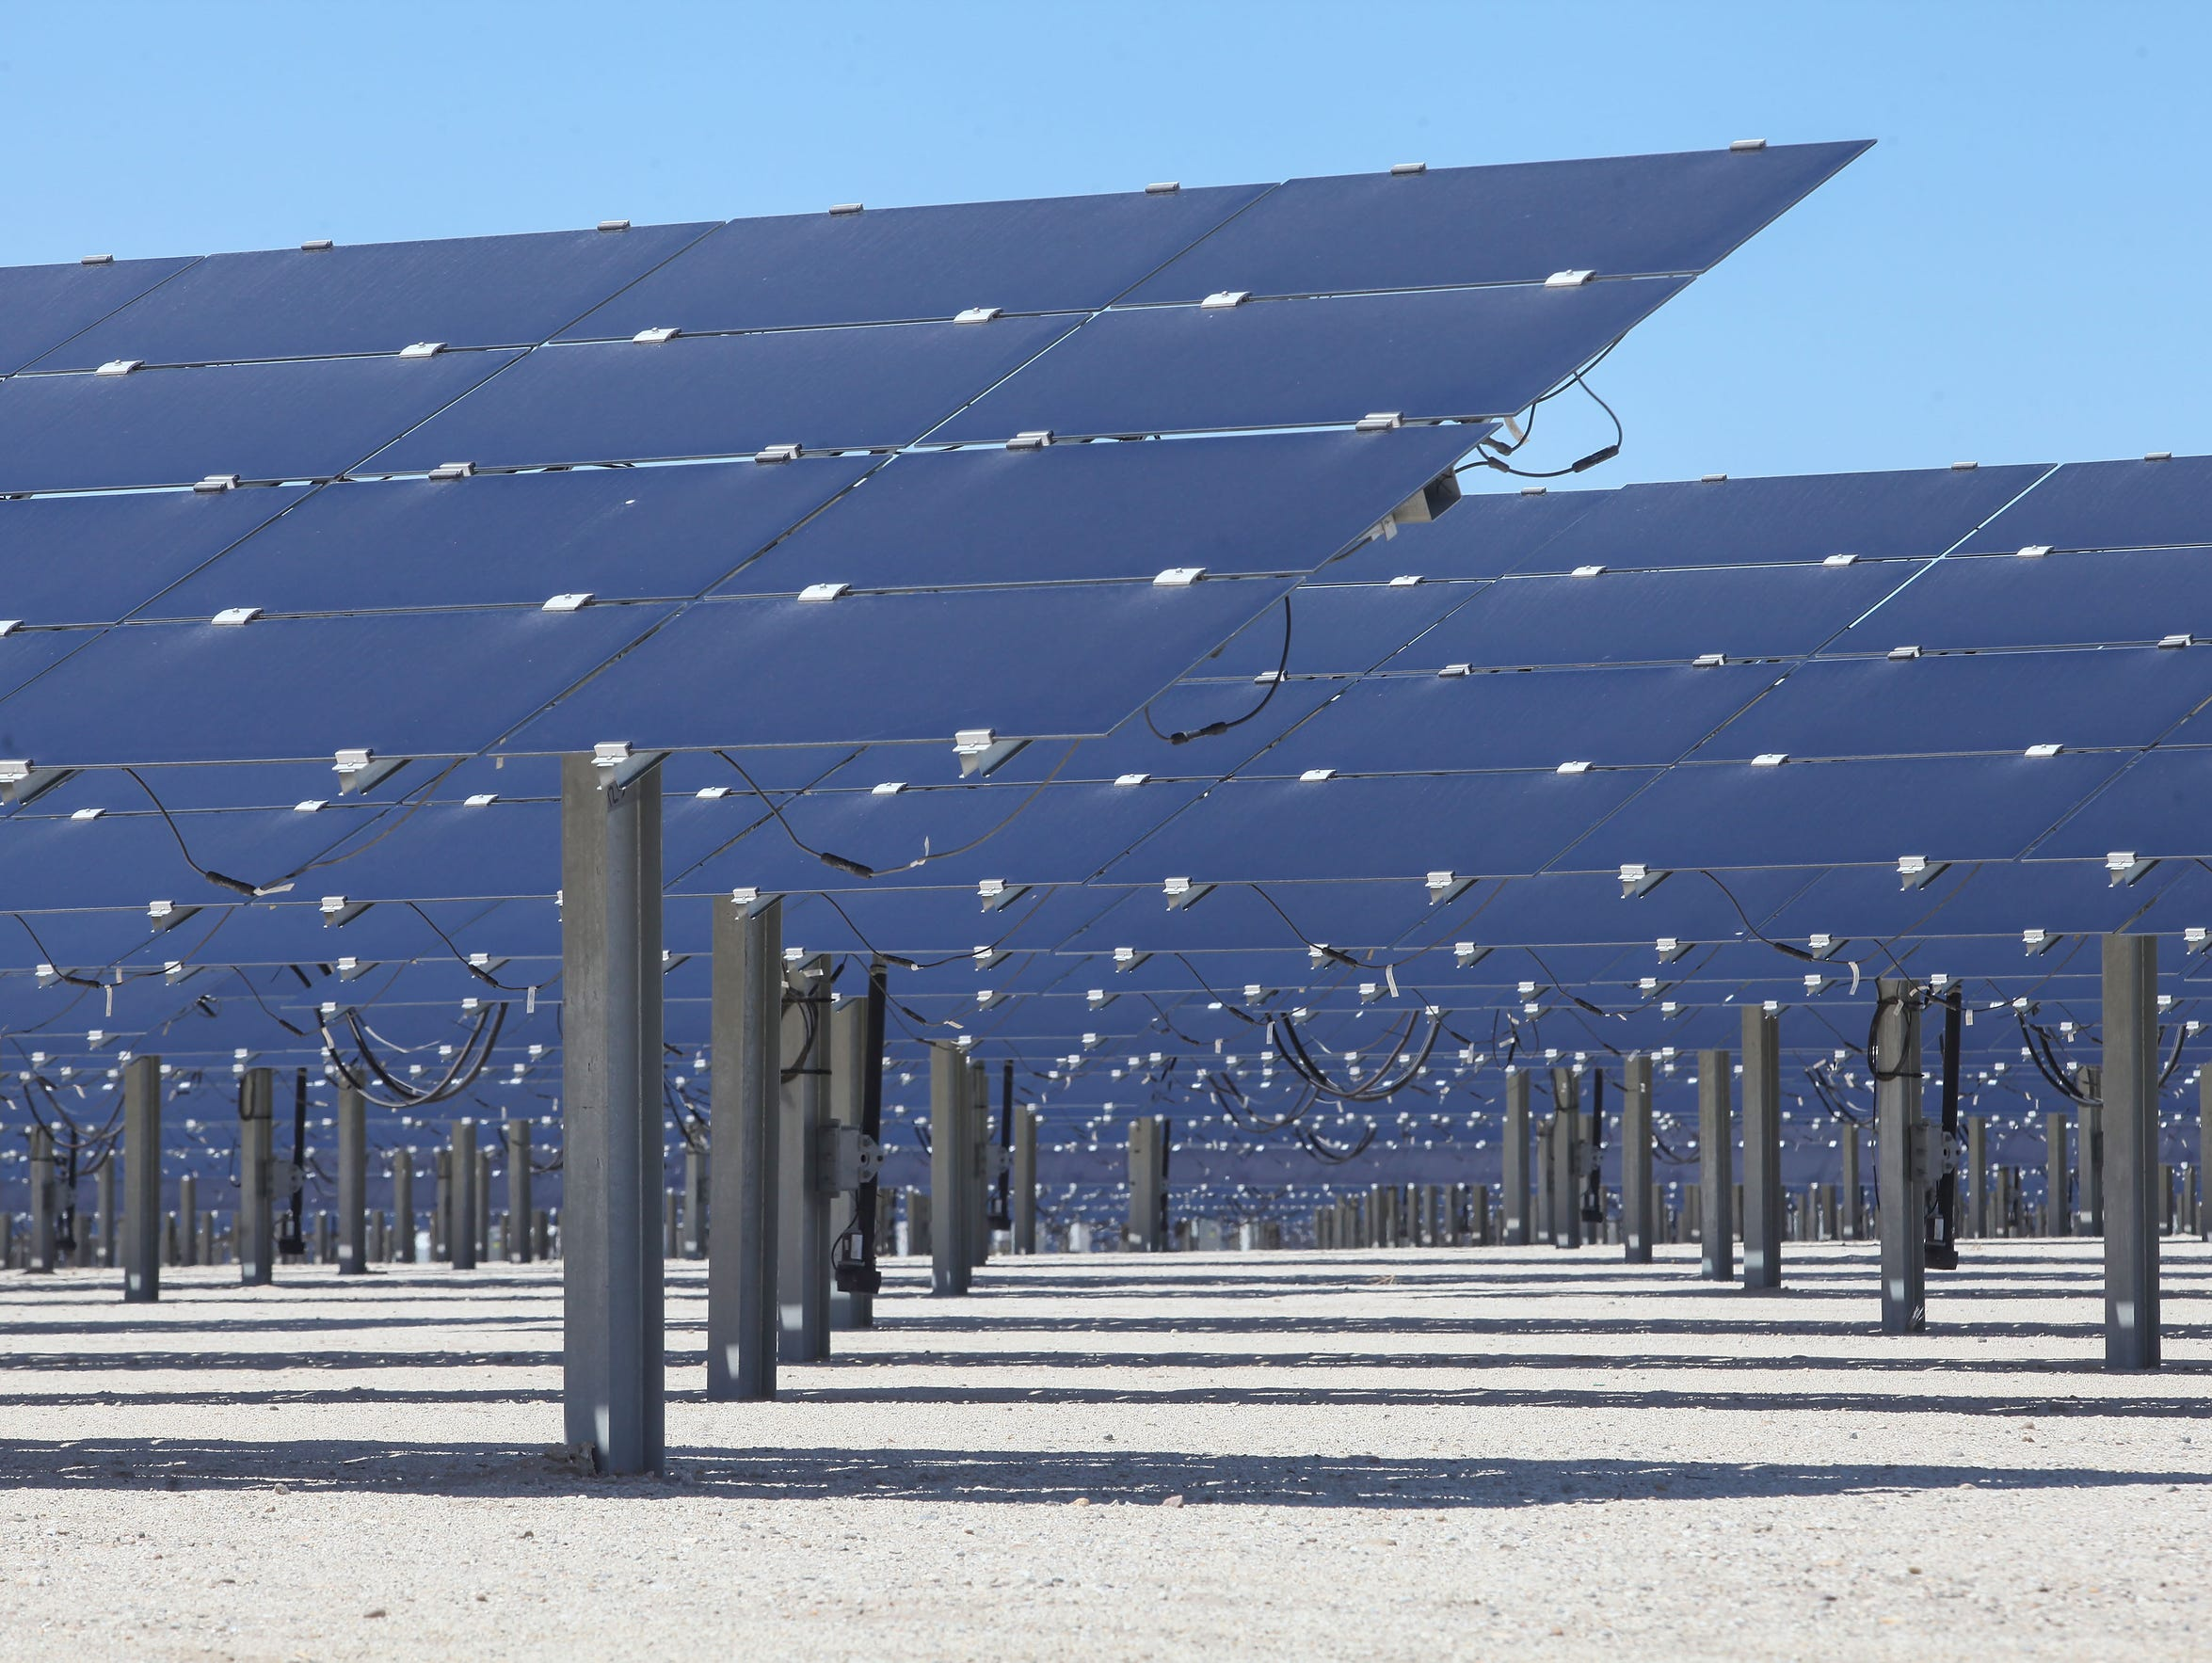 Solar panels soak up the sun at the 50-megawatt Seville